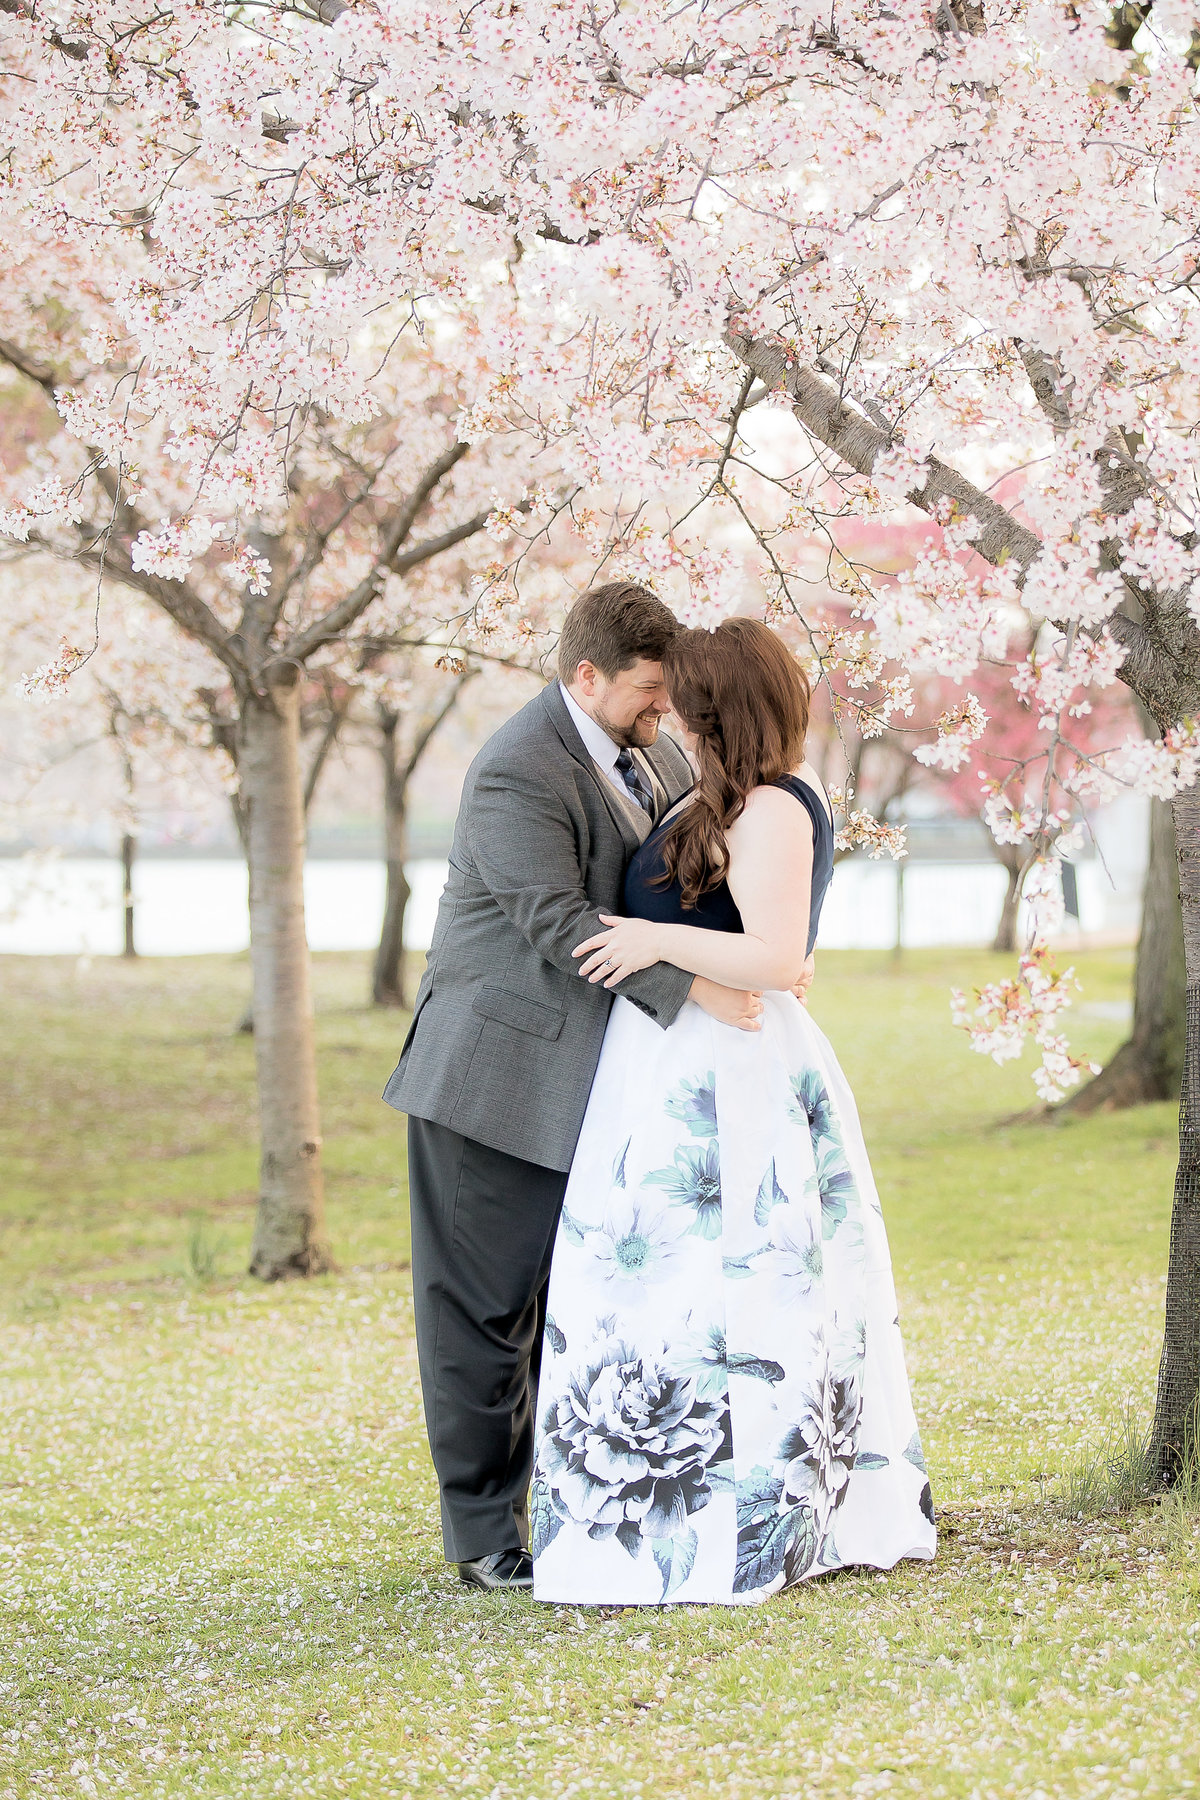 Couple with Cherry Blossoms